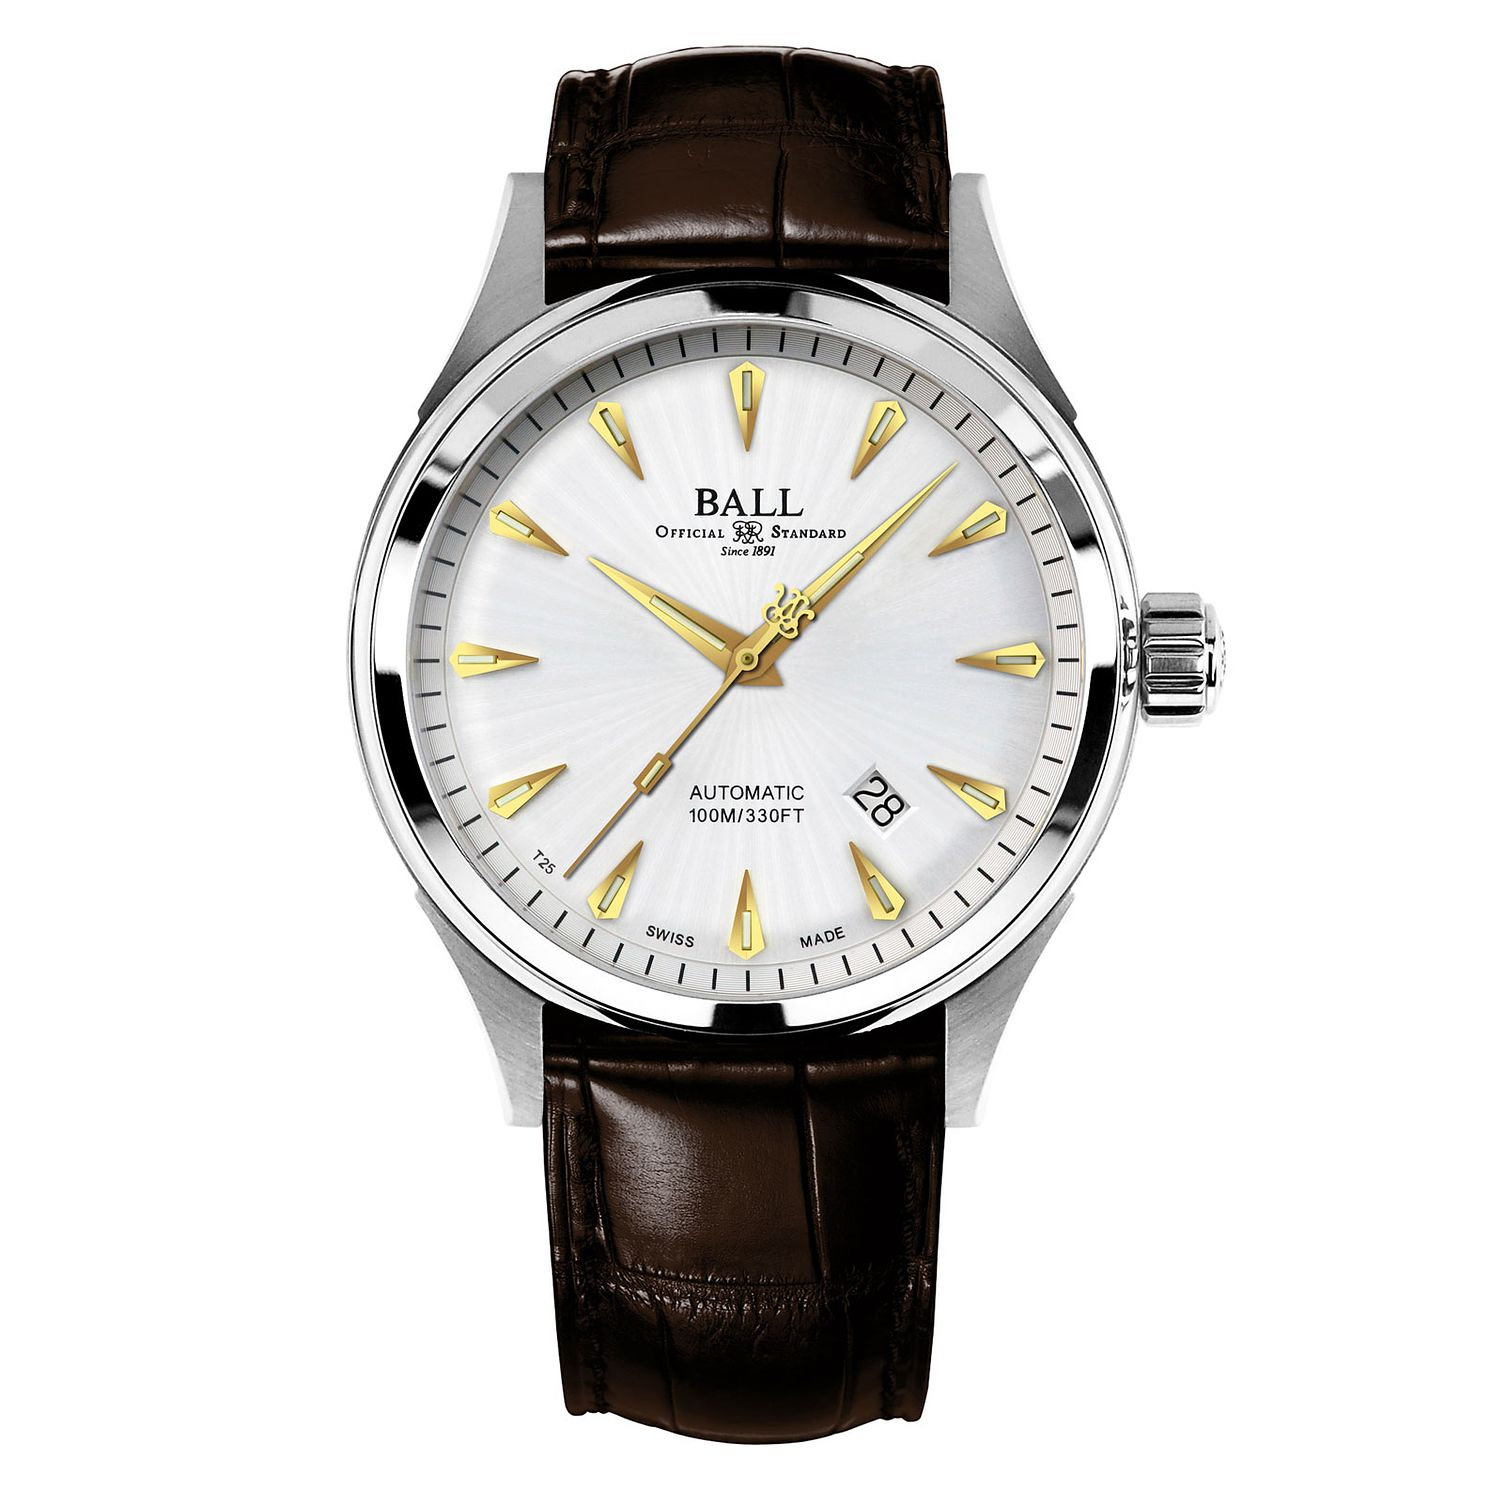 Ball Fireman Racer Classic Men's Stainless Steel Watch - Product number 3762408